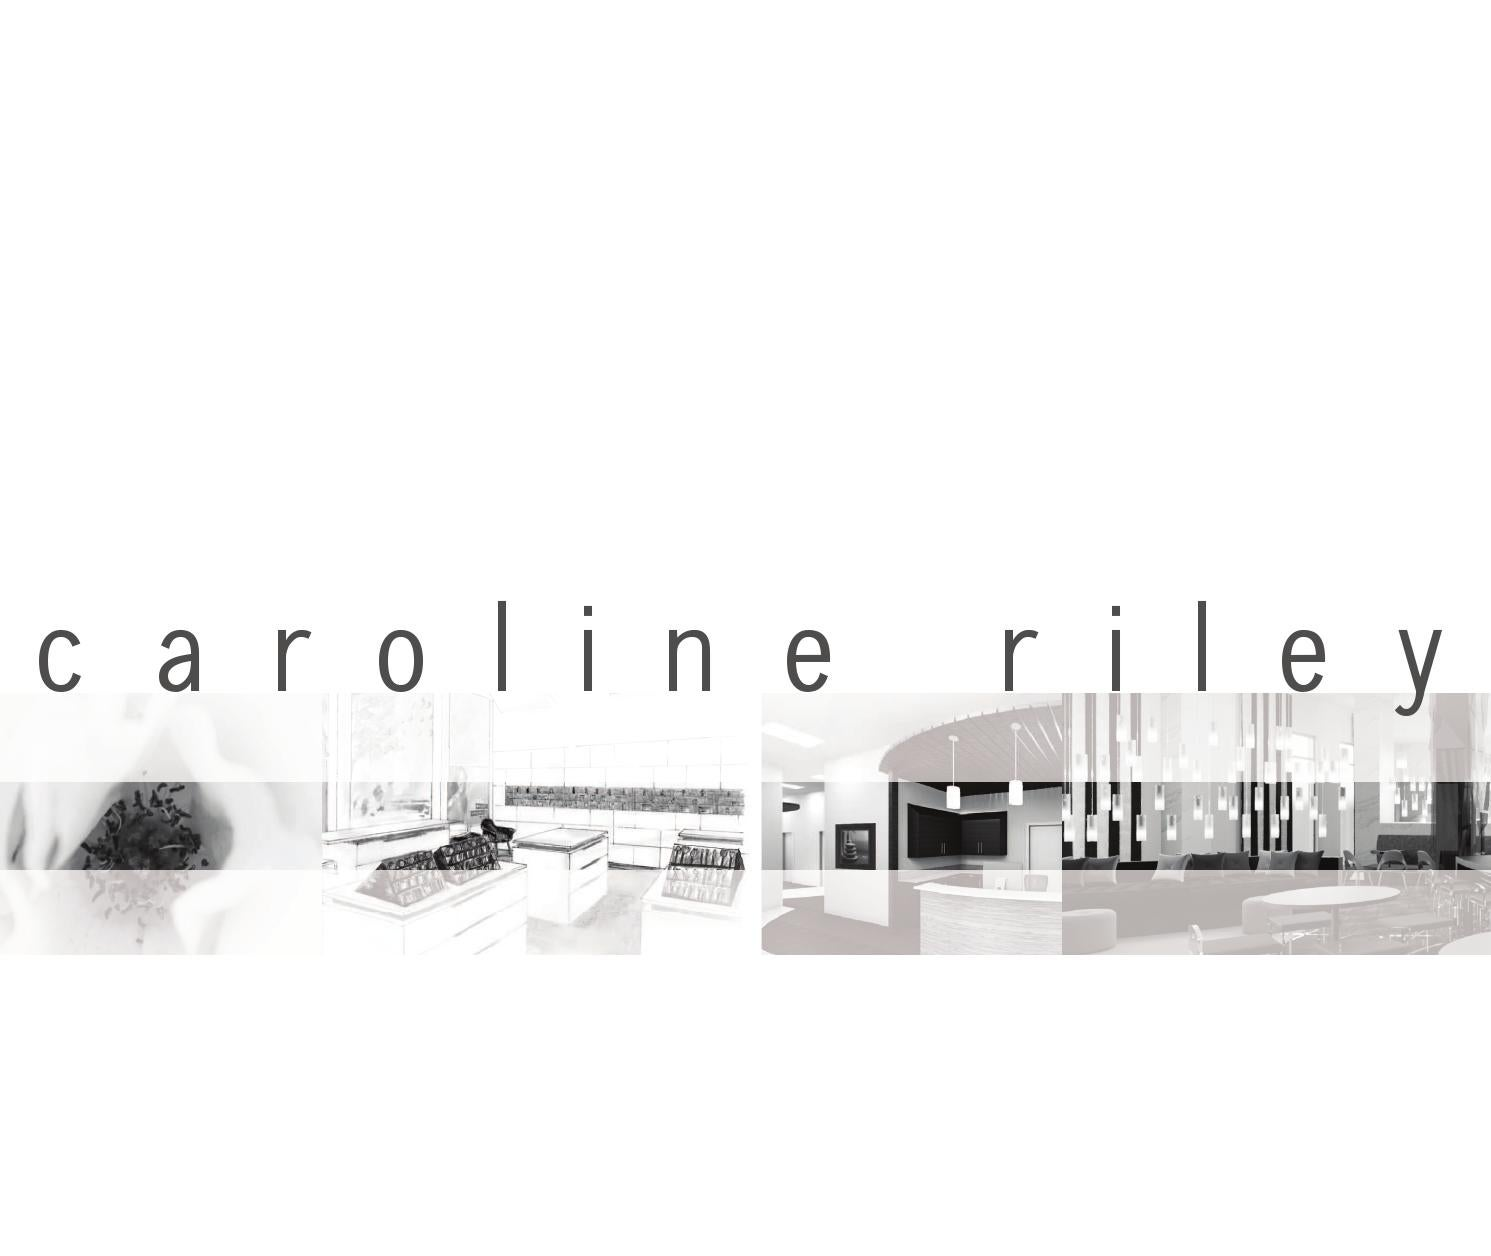 Caroline riley interior design portfolio by caroline riley - Interior design portfolio samples ...